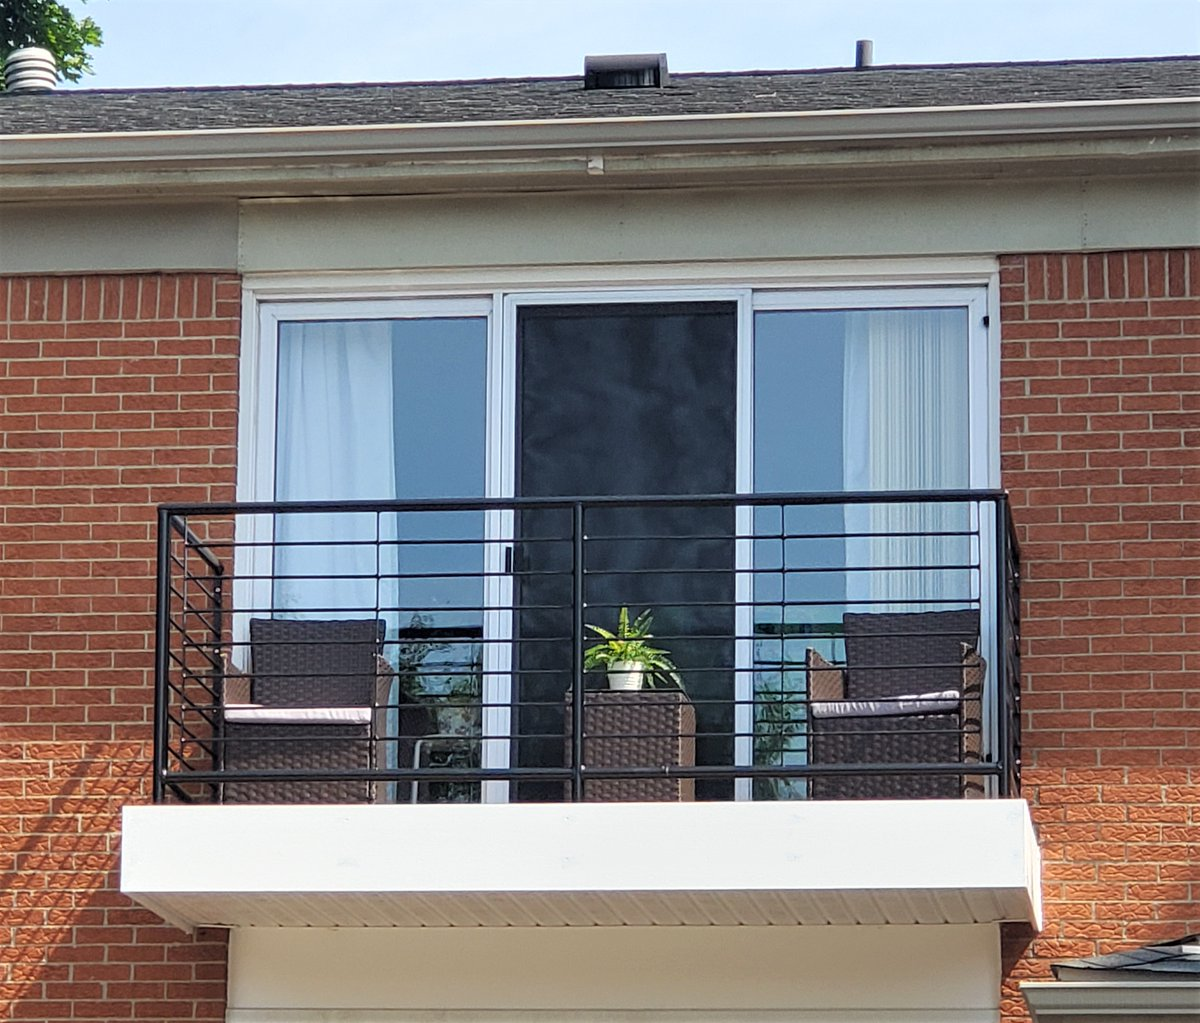 We are excited to announce that our balcony renovation project is almost complete! We are thrilled that our 2nd floor residents are taking care of and enjoying their new balconies. Take a look at this super simple but very chic brand new balcony! pic.twitter.com/pHY9ElMTmf